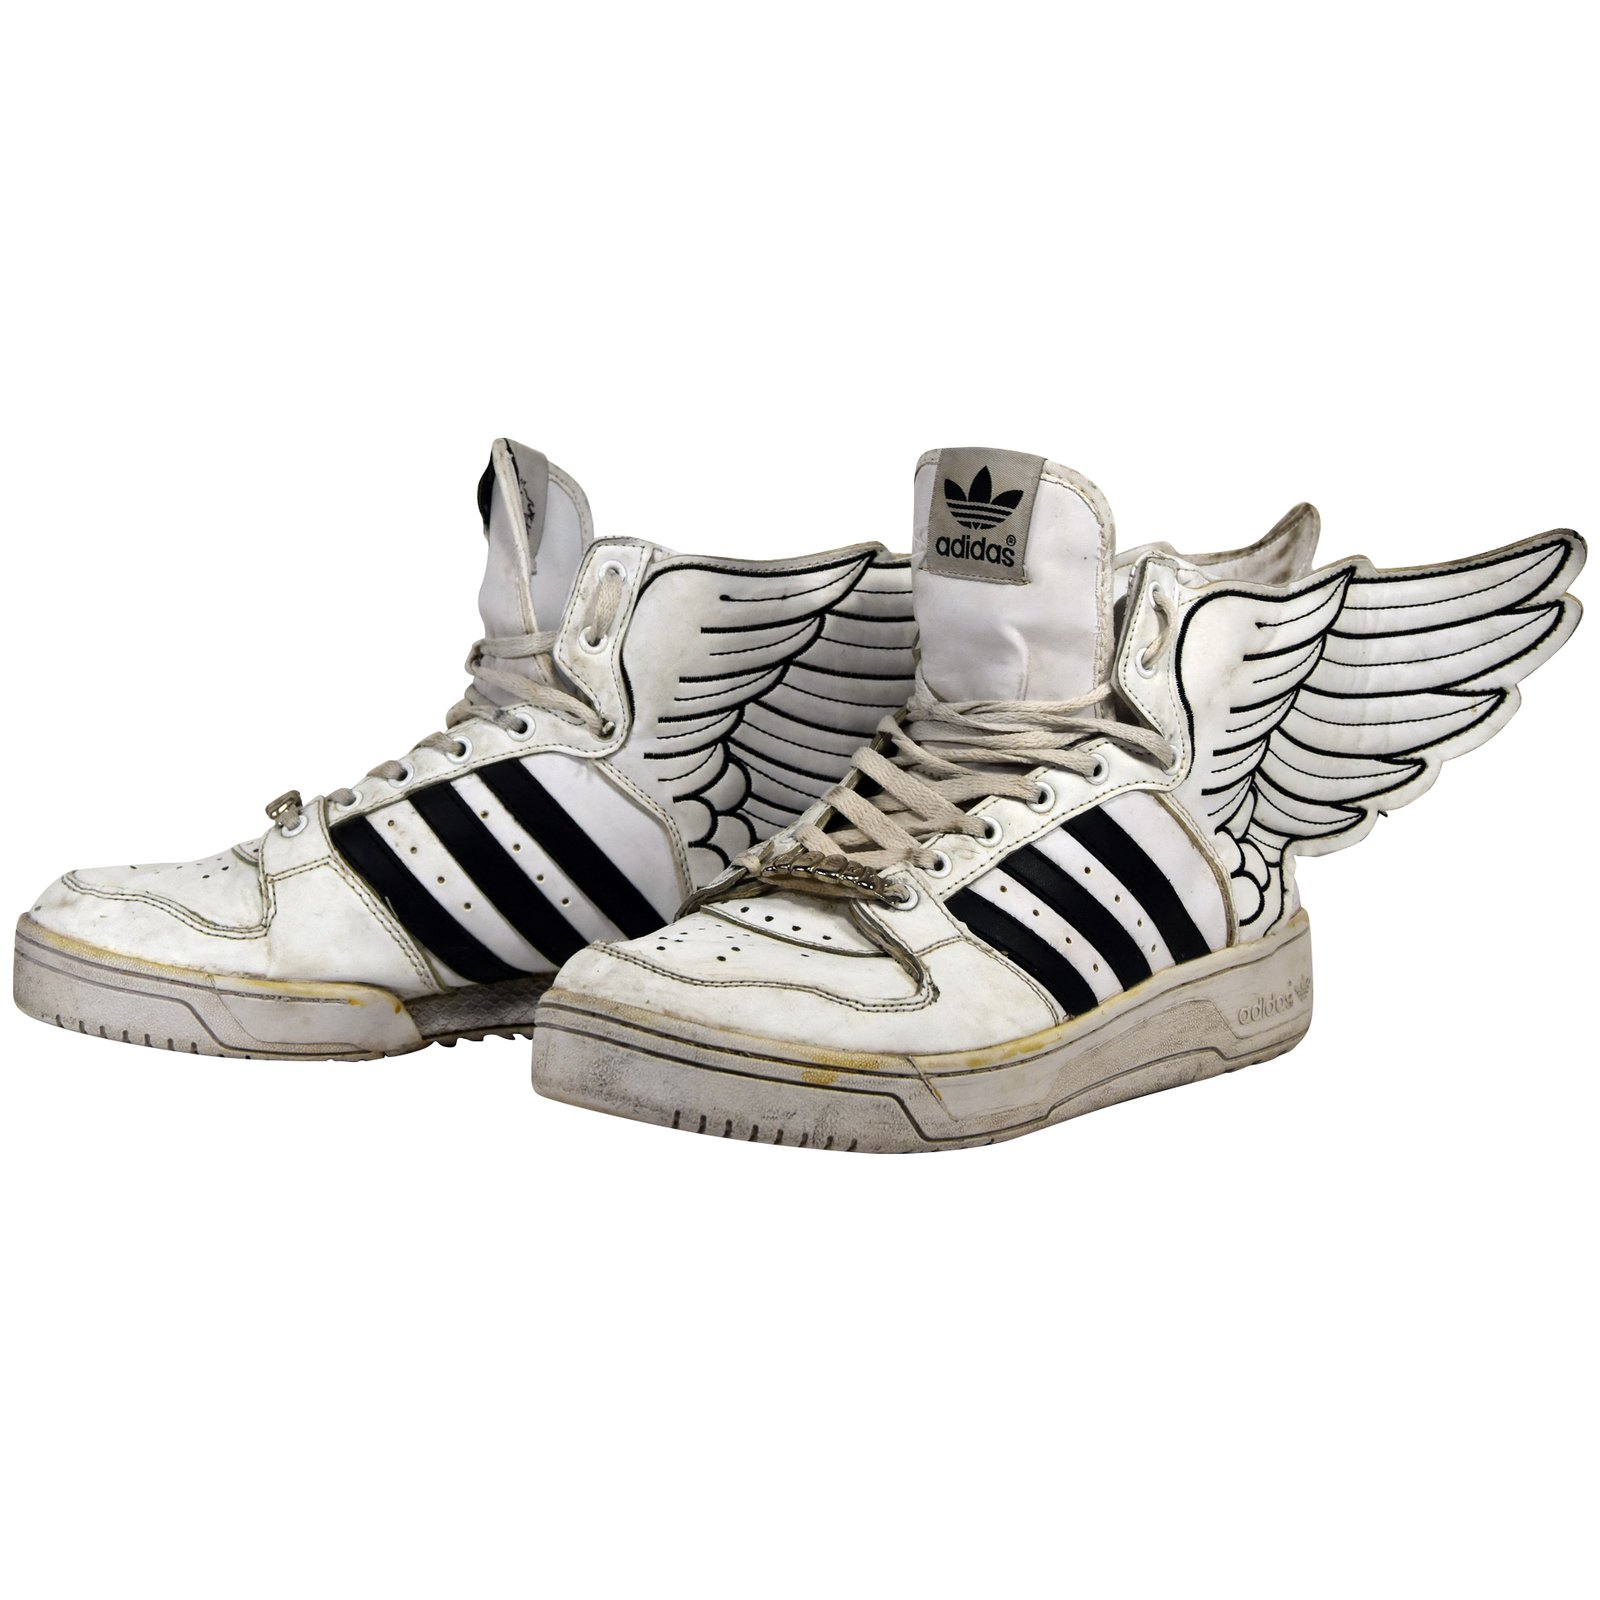 Baskets jeremy scott wings adidas originals t.43 13 uk 9